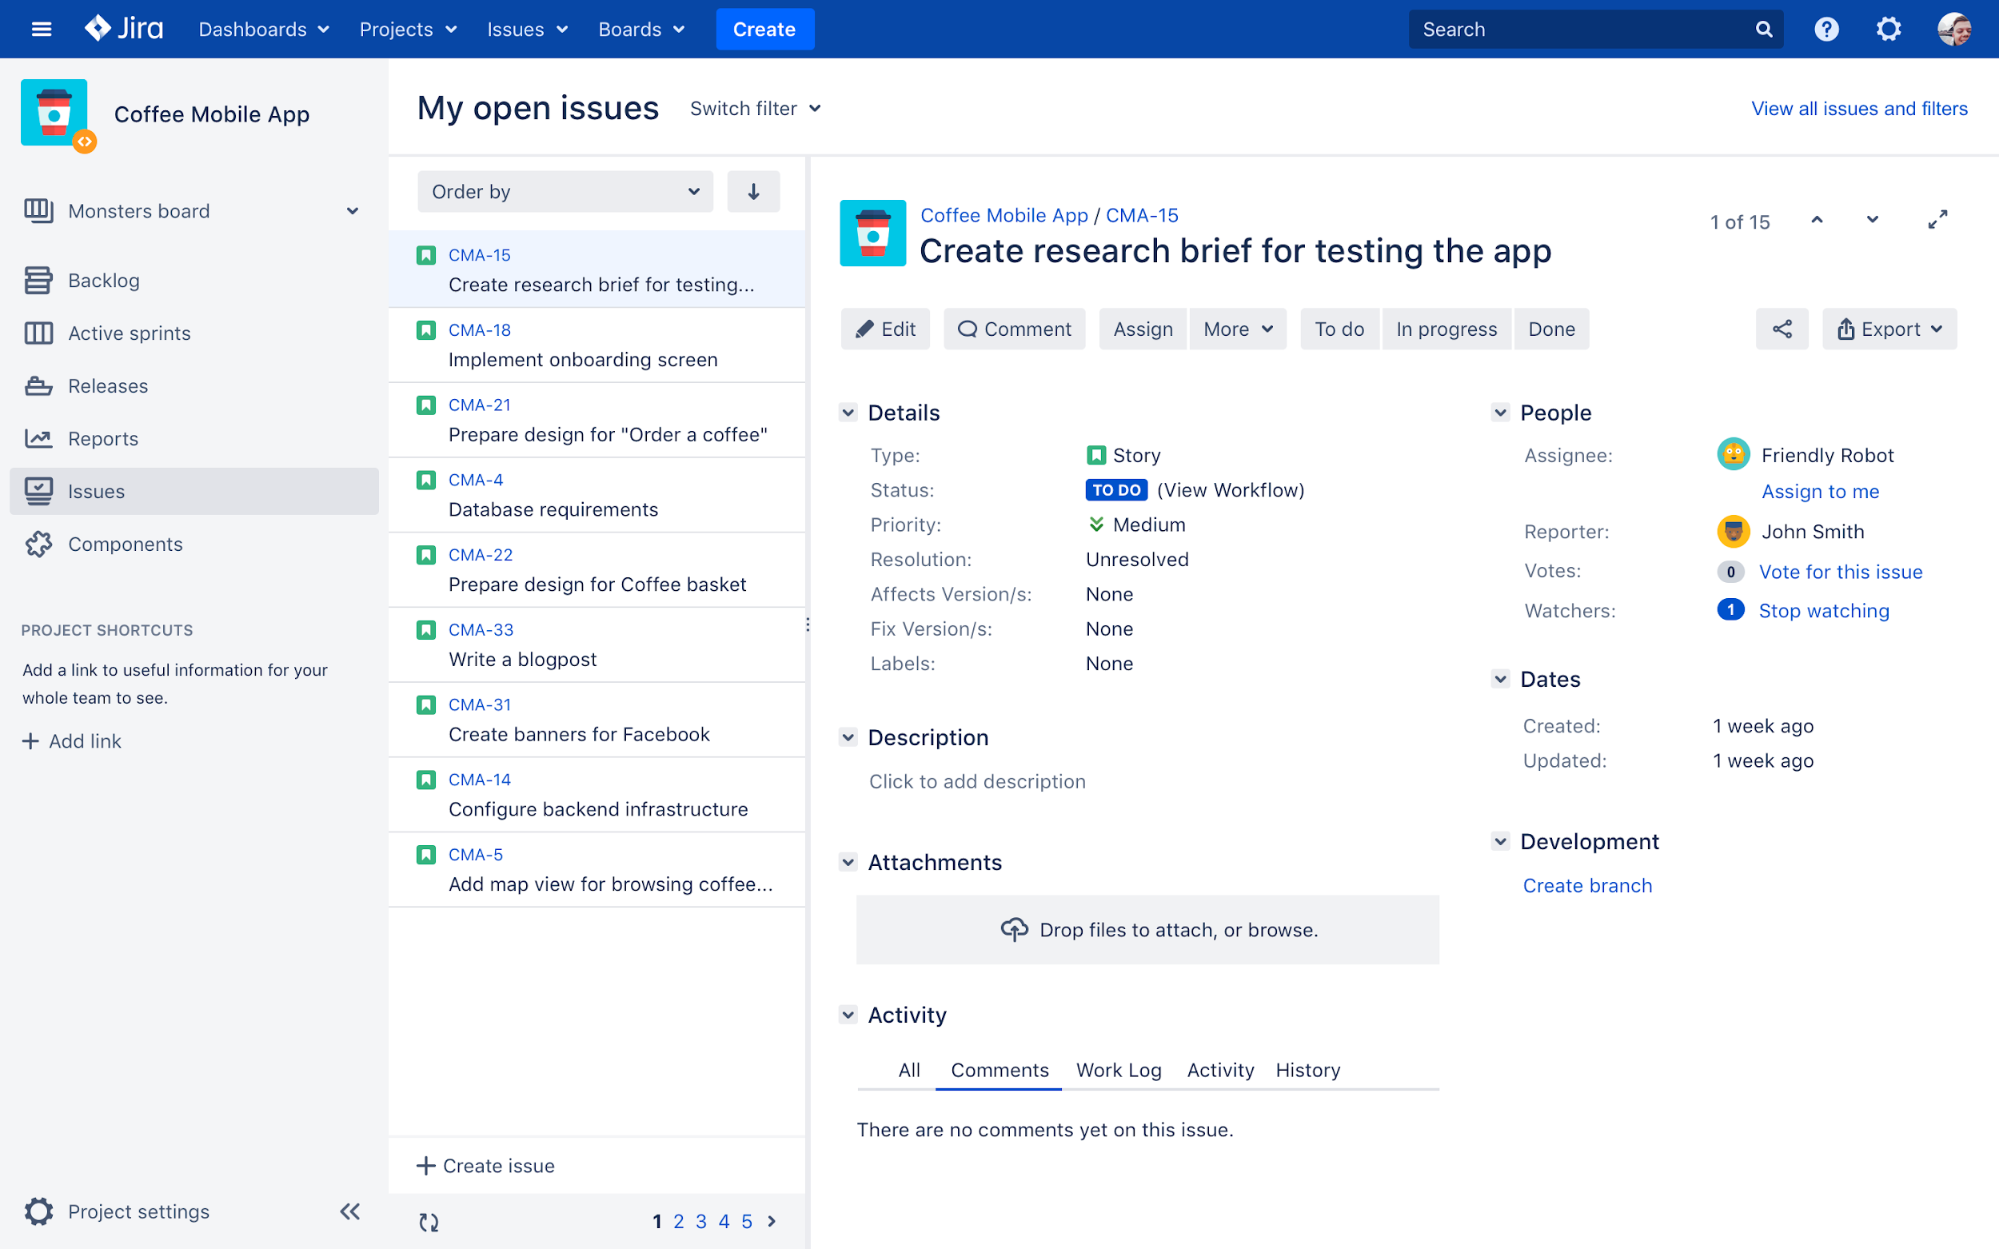 20 Best Project Management & Collaboration Tools | Business